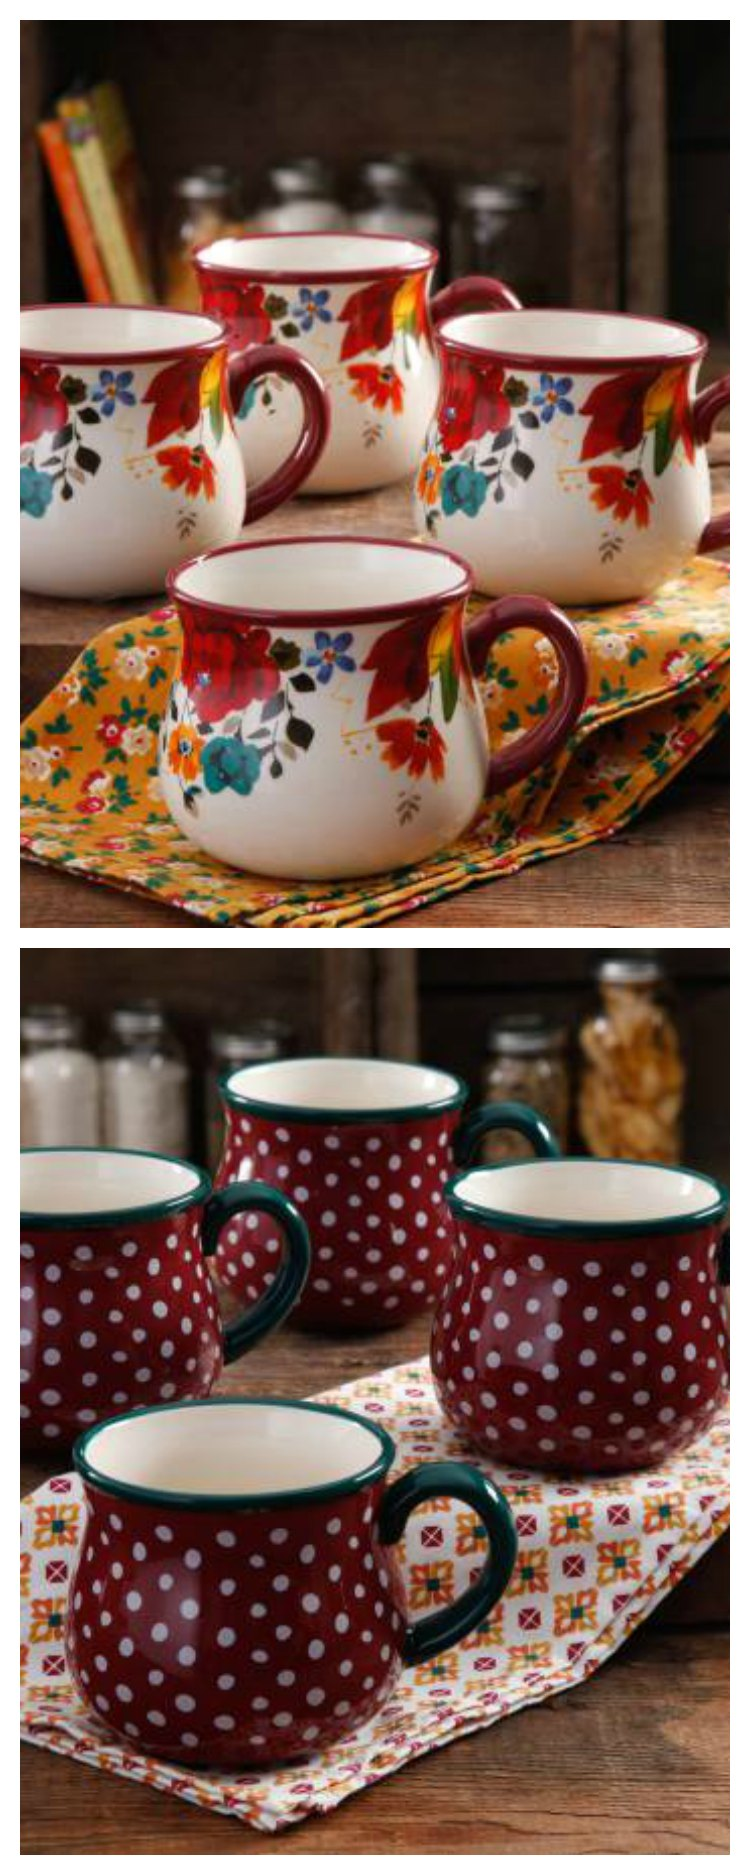 28 Ounce Pioneer Woman Coffee Cups are perfect for coffee, tea or any hot beverage. So pretty and yet so useful. What is your favorite color?